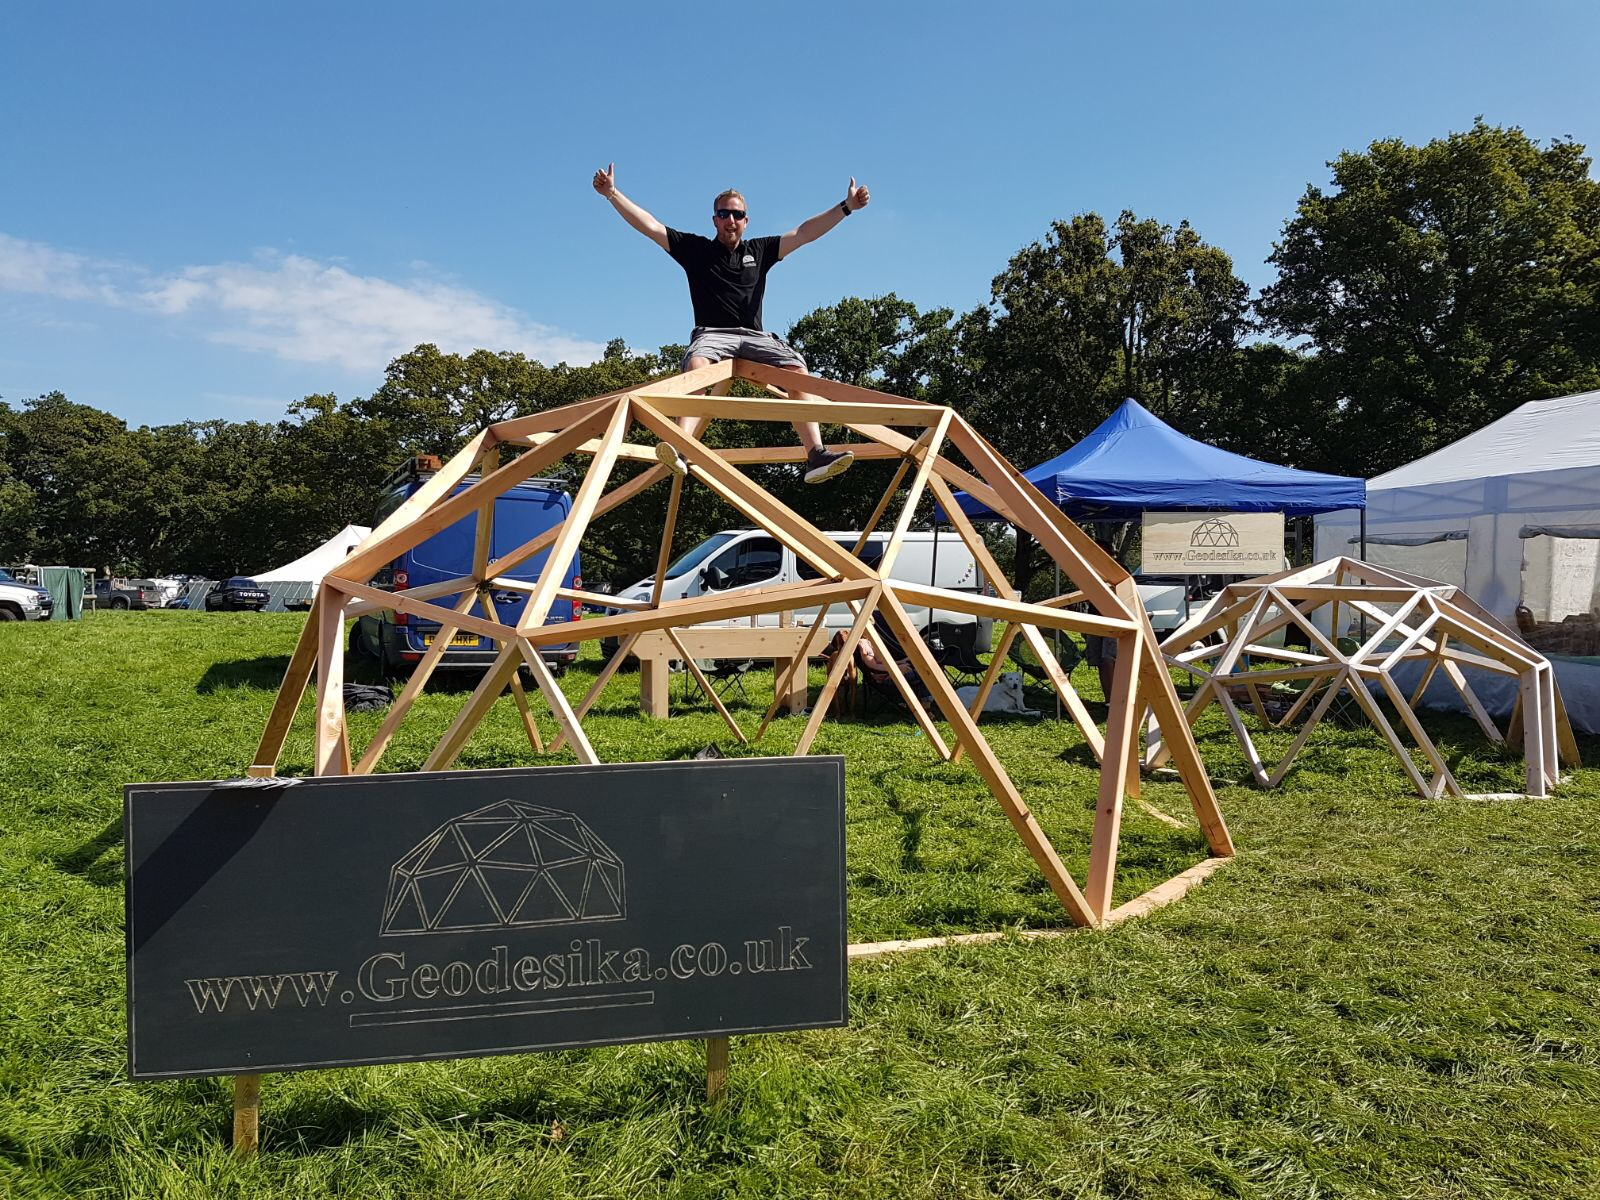 Geodesic Domes - We have worked along side other colleagues to develop these douglas fir solid timber geodesic domes. These were designed with the idea of producing outdoor classrooms for schools and also could be used for many other things such as glamping or a garden room.Here we are at the Stock Gaylard Oak Fair 2017 http://www.stockgaylard.com/index.asp